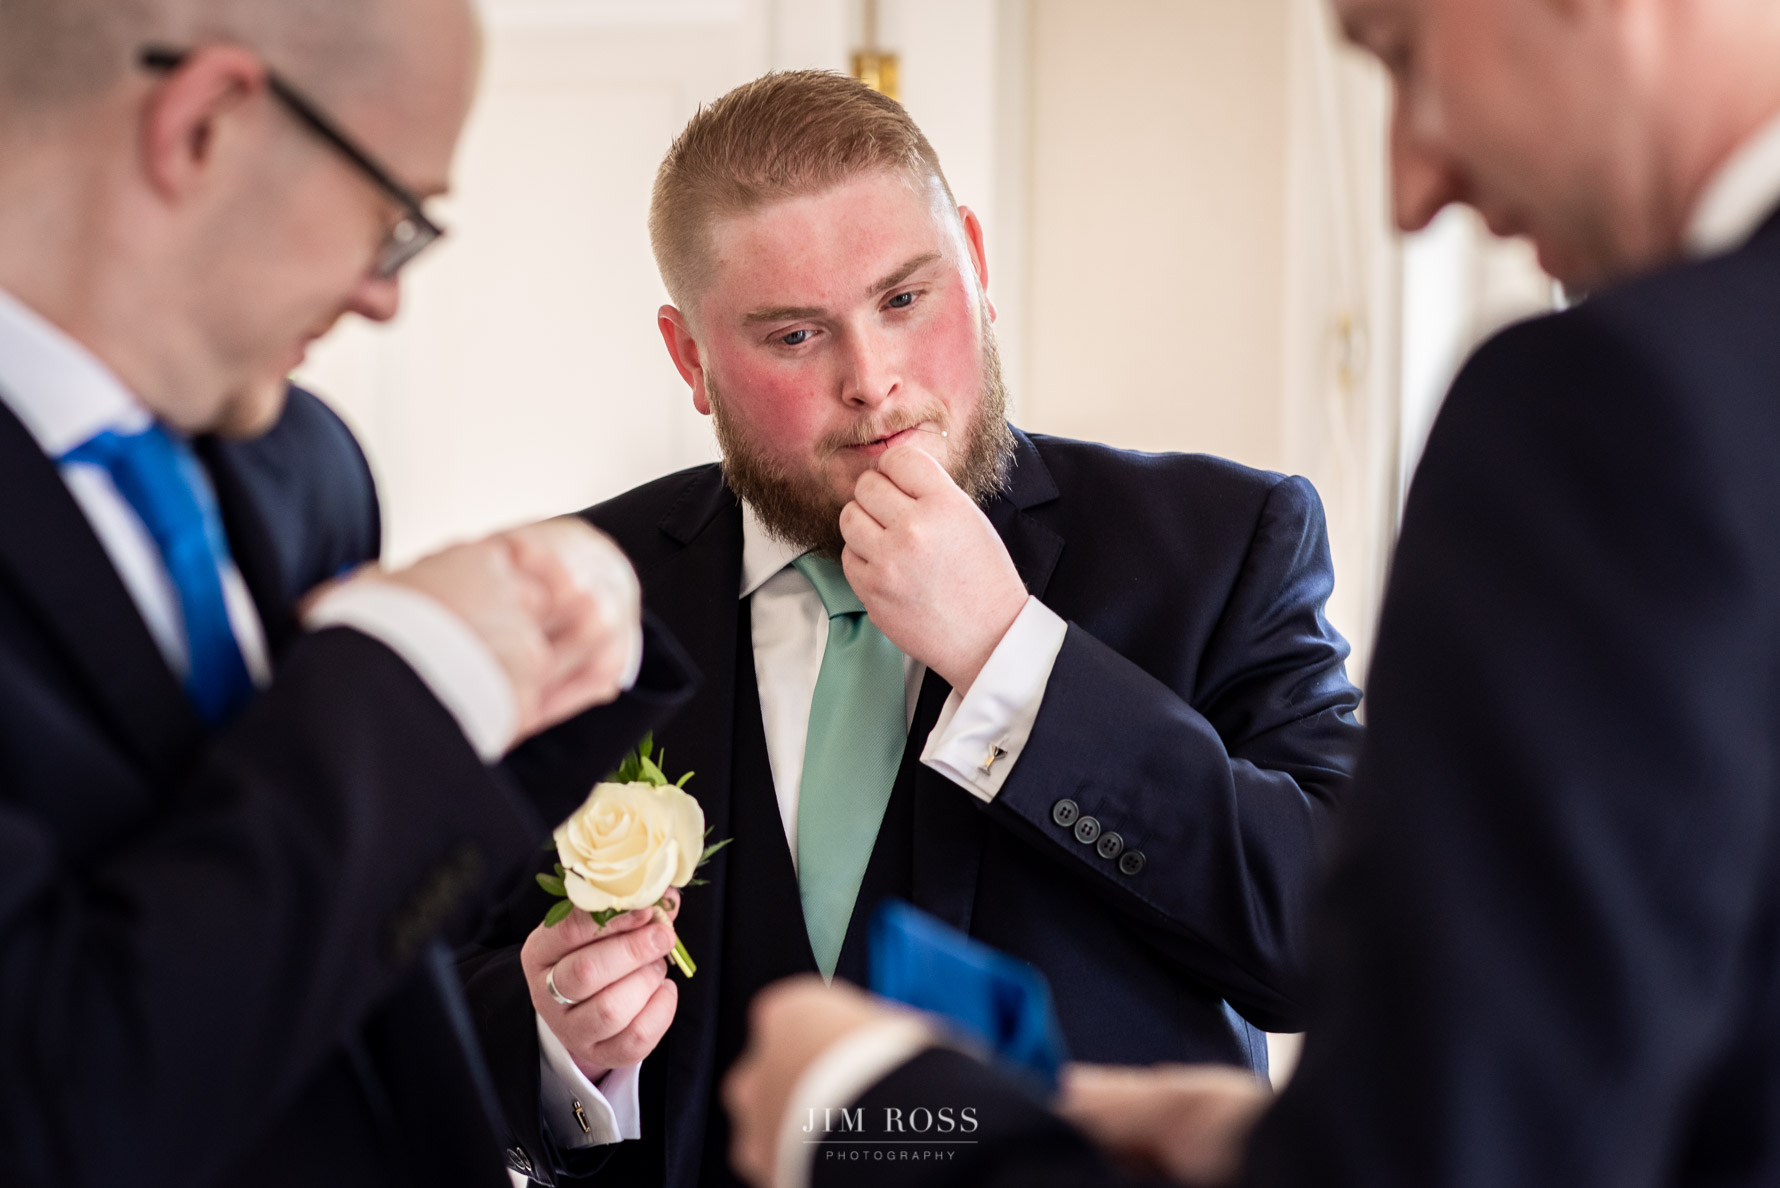 Putting on buttonholes